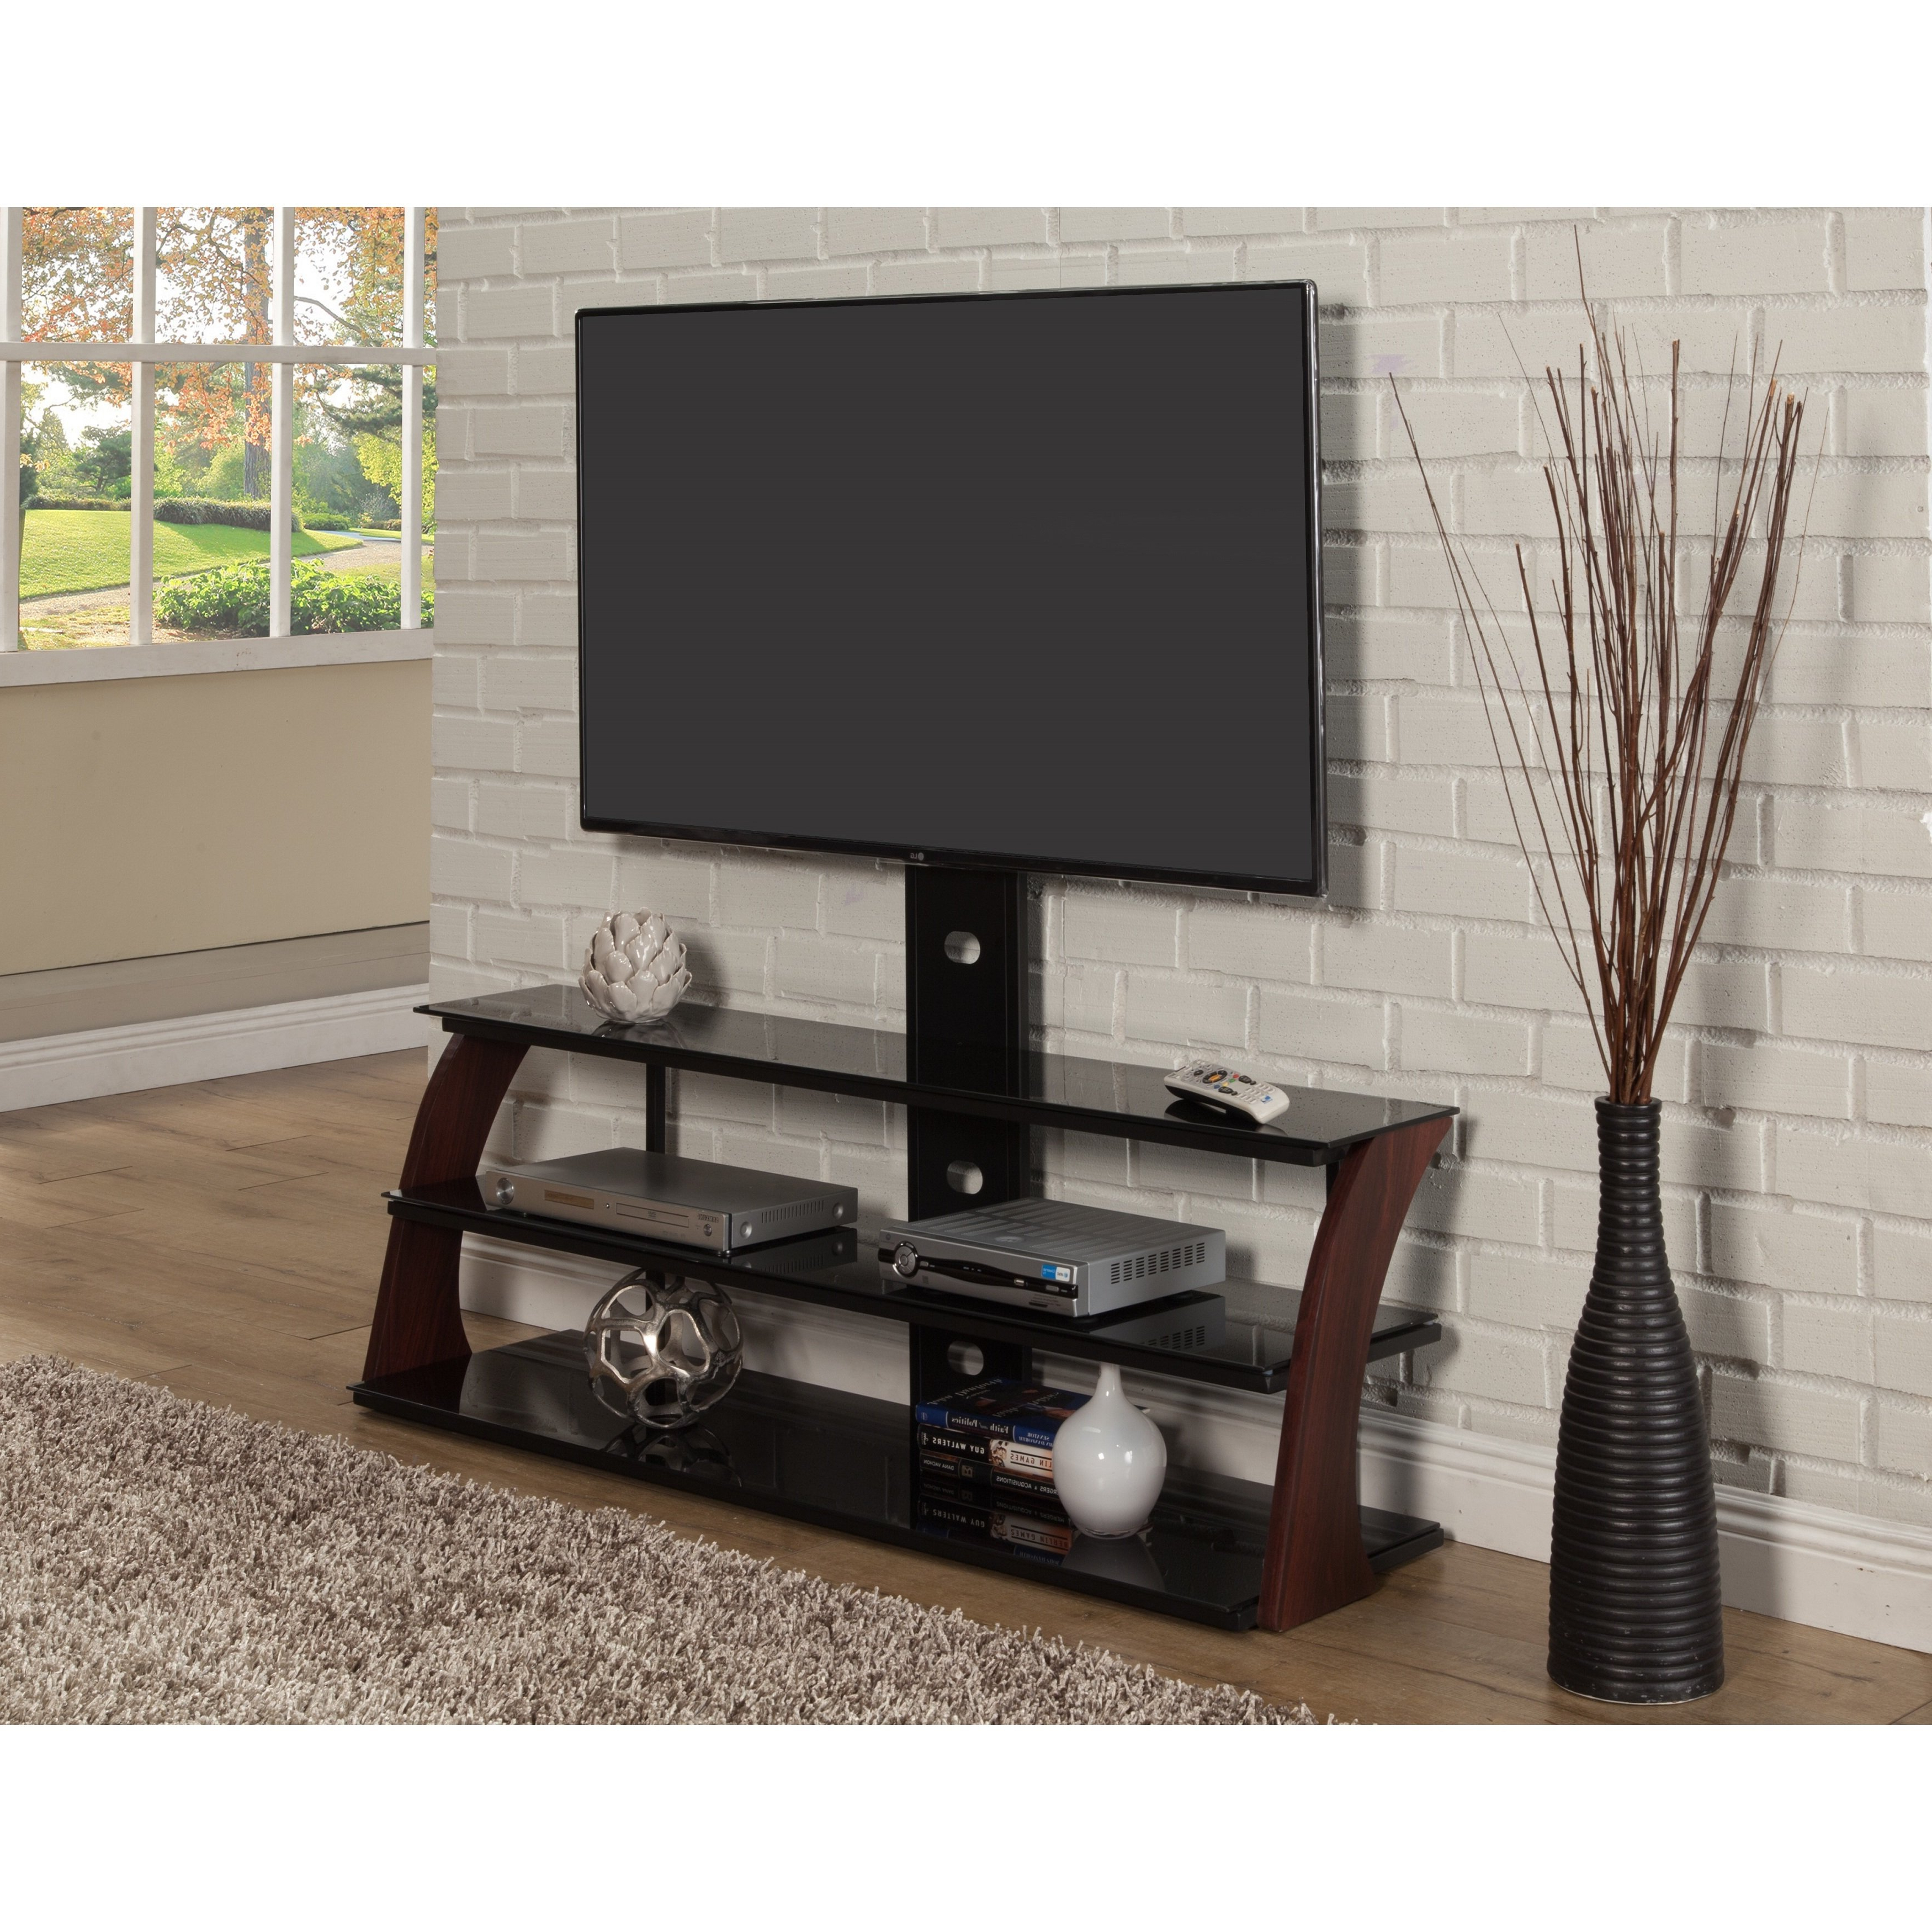 Most Popular Shop Sandberg Furniture Abigail Black Tv Stand – Free Shipping Today For Walters Media Console Tables (View 7 of 20)